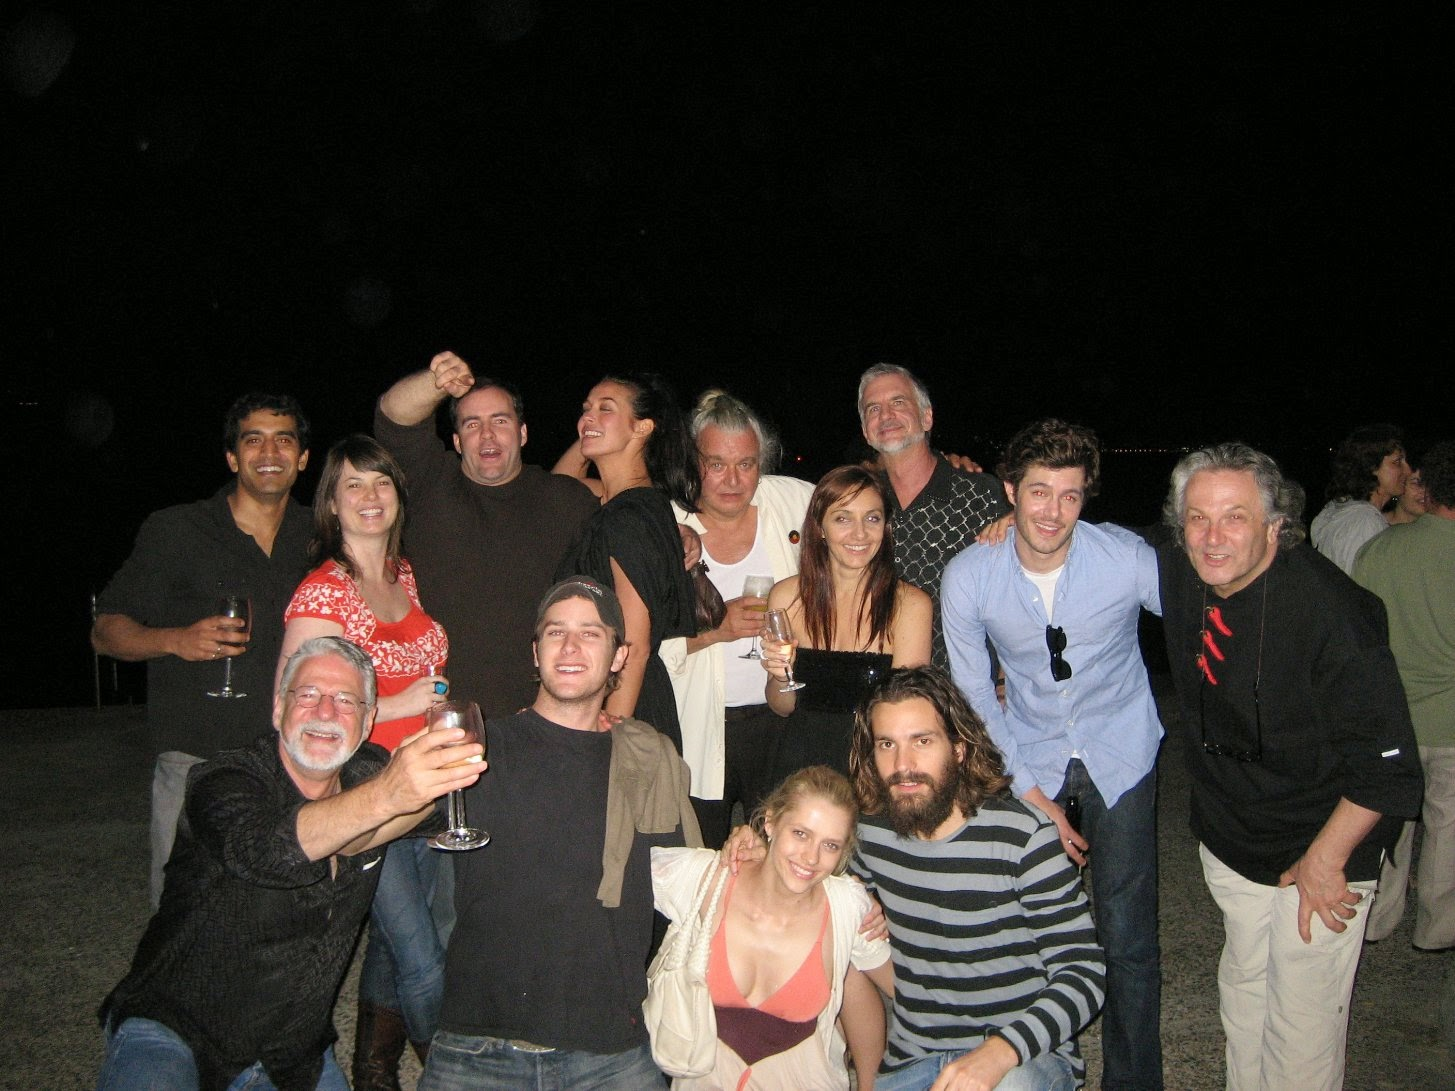 lord of the rings imdb cast